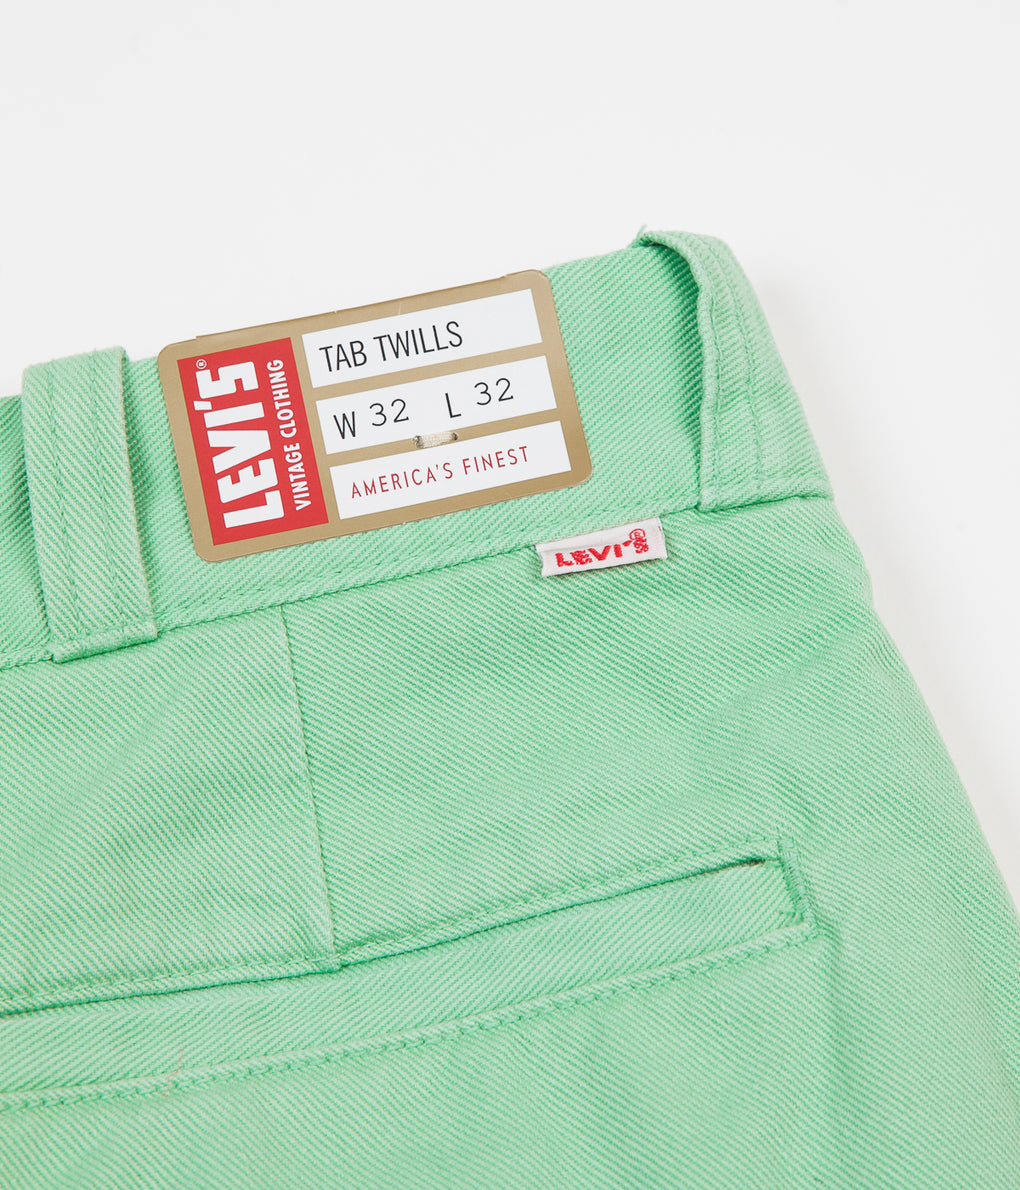 Levi's® Vintage Clothing Tab Twill Trousers - Meadow